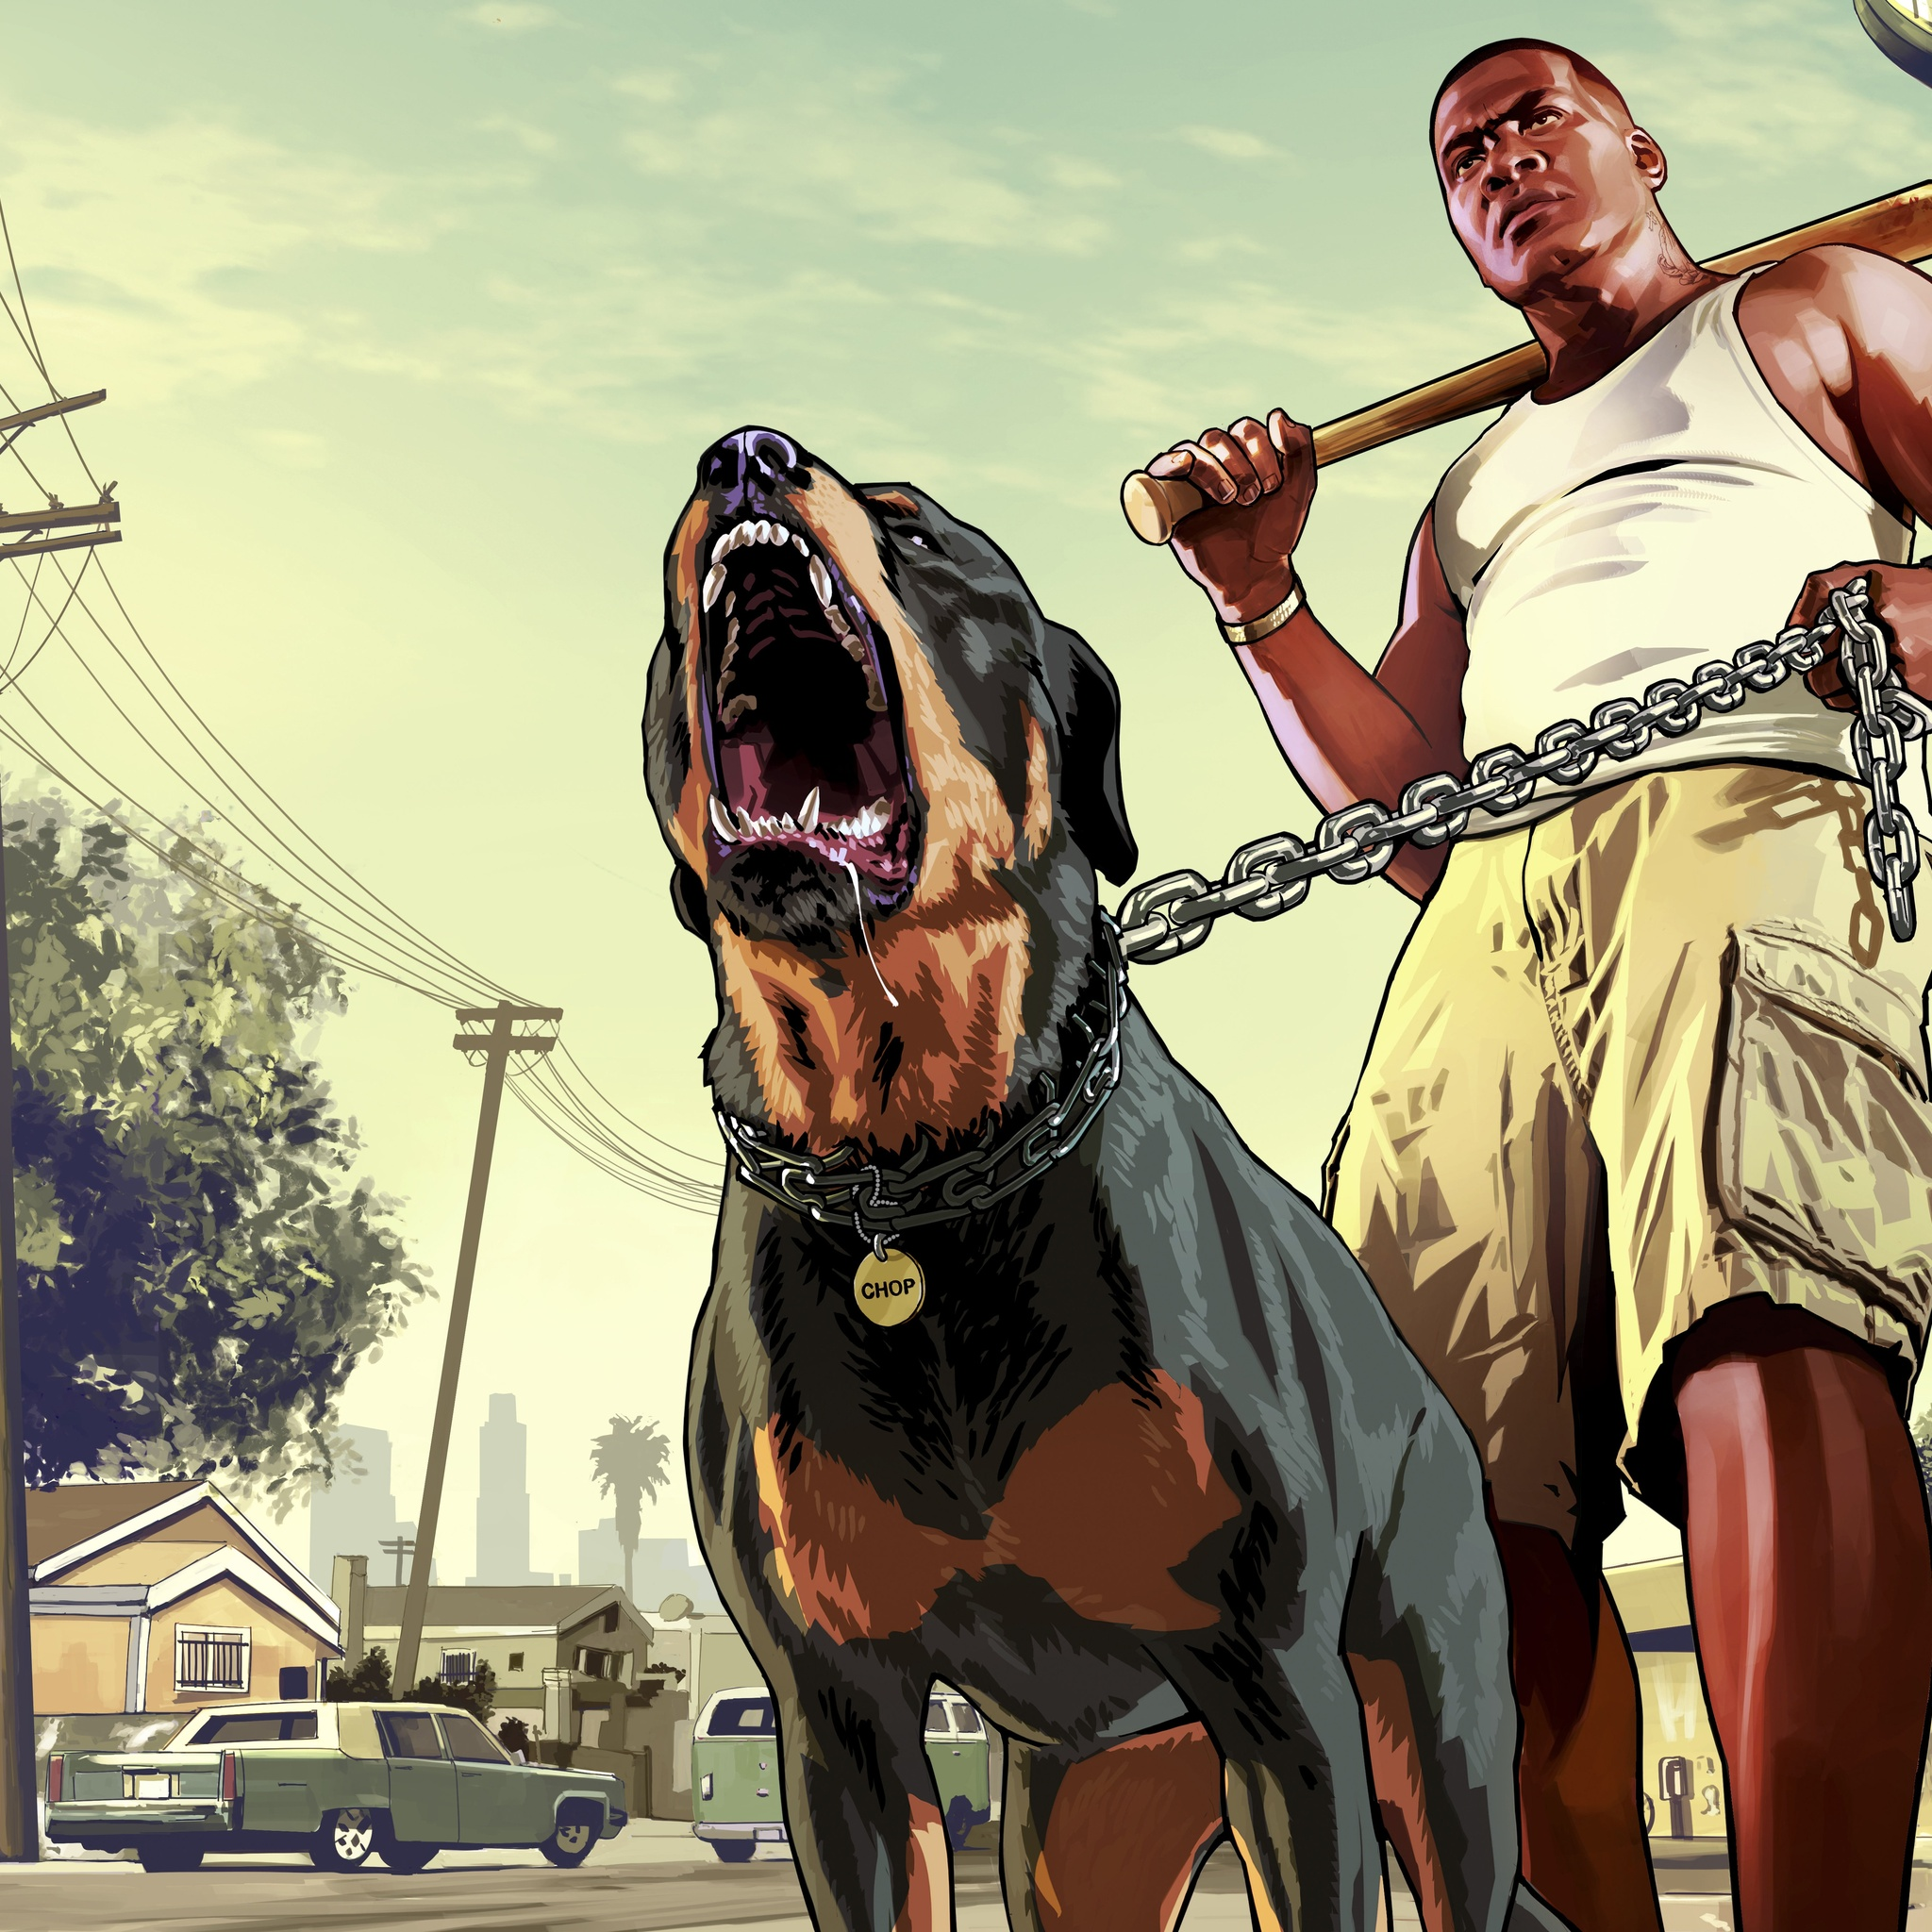 2048x2048 Gta 5 Franklin With Chop Rottweiler 8k Ipad Air